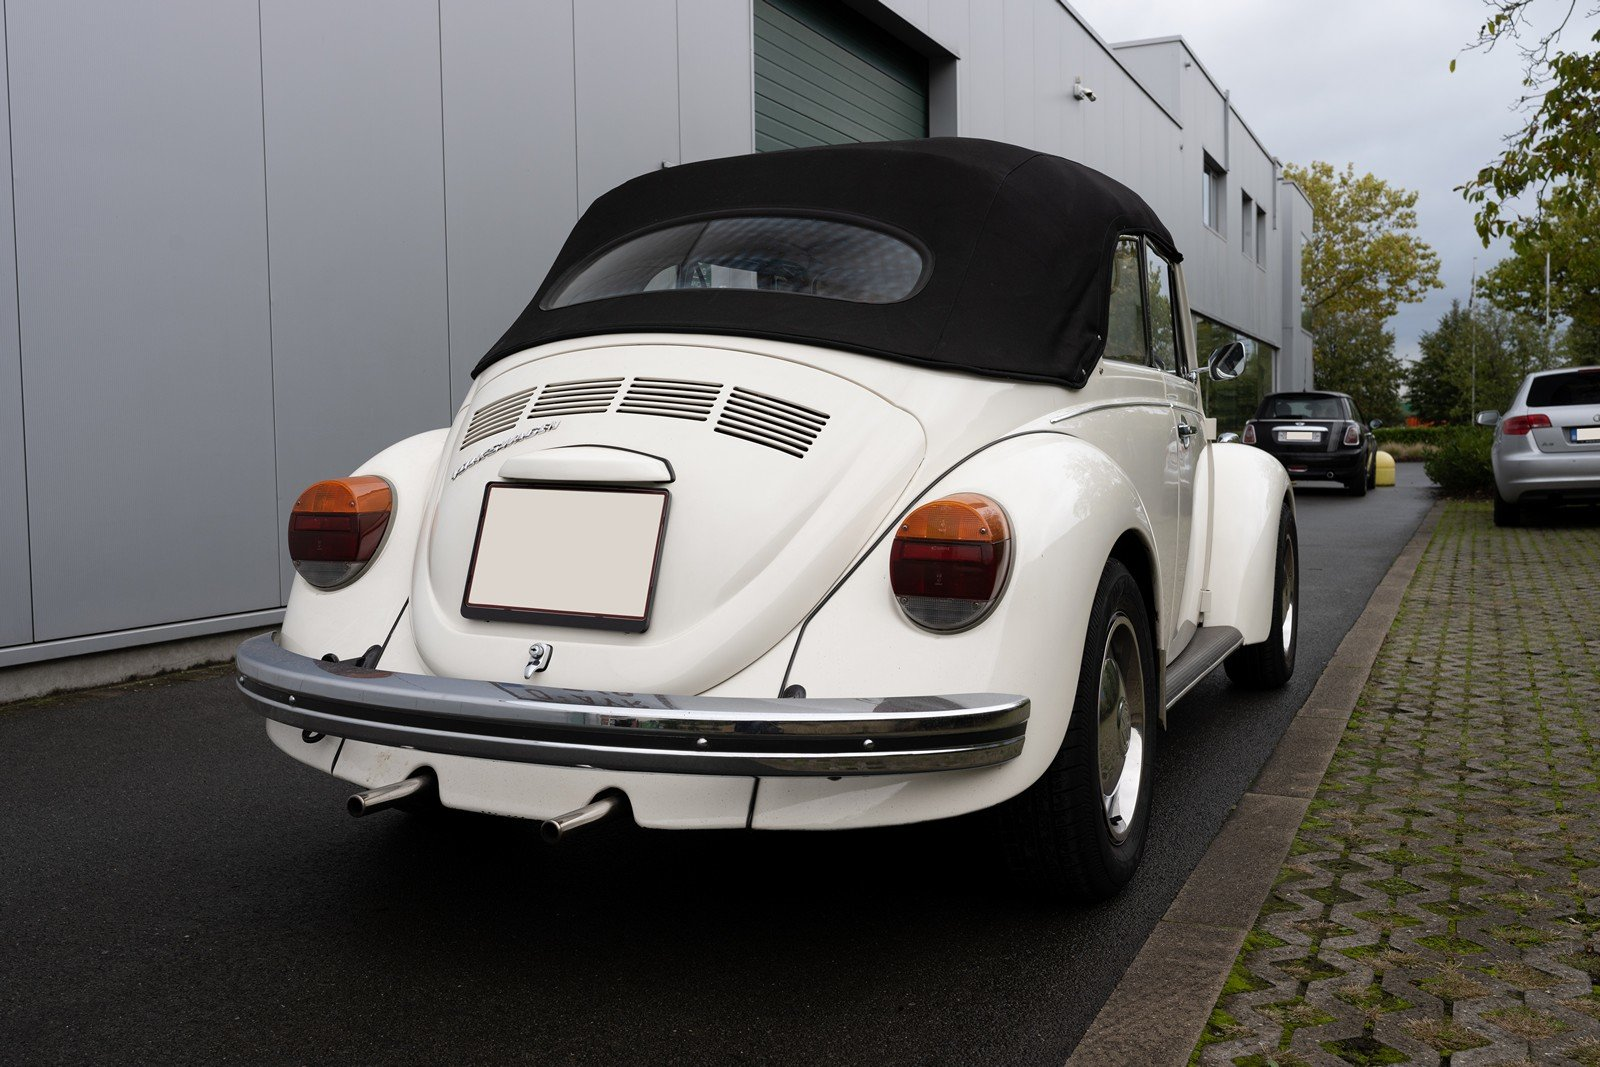 1973 Volkswagen Beetle Type 1303 Cabriolet For Sale (picture 10 of 39)